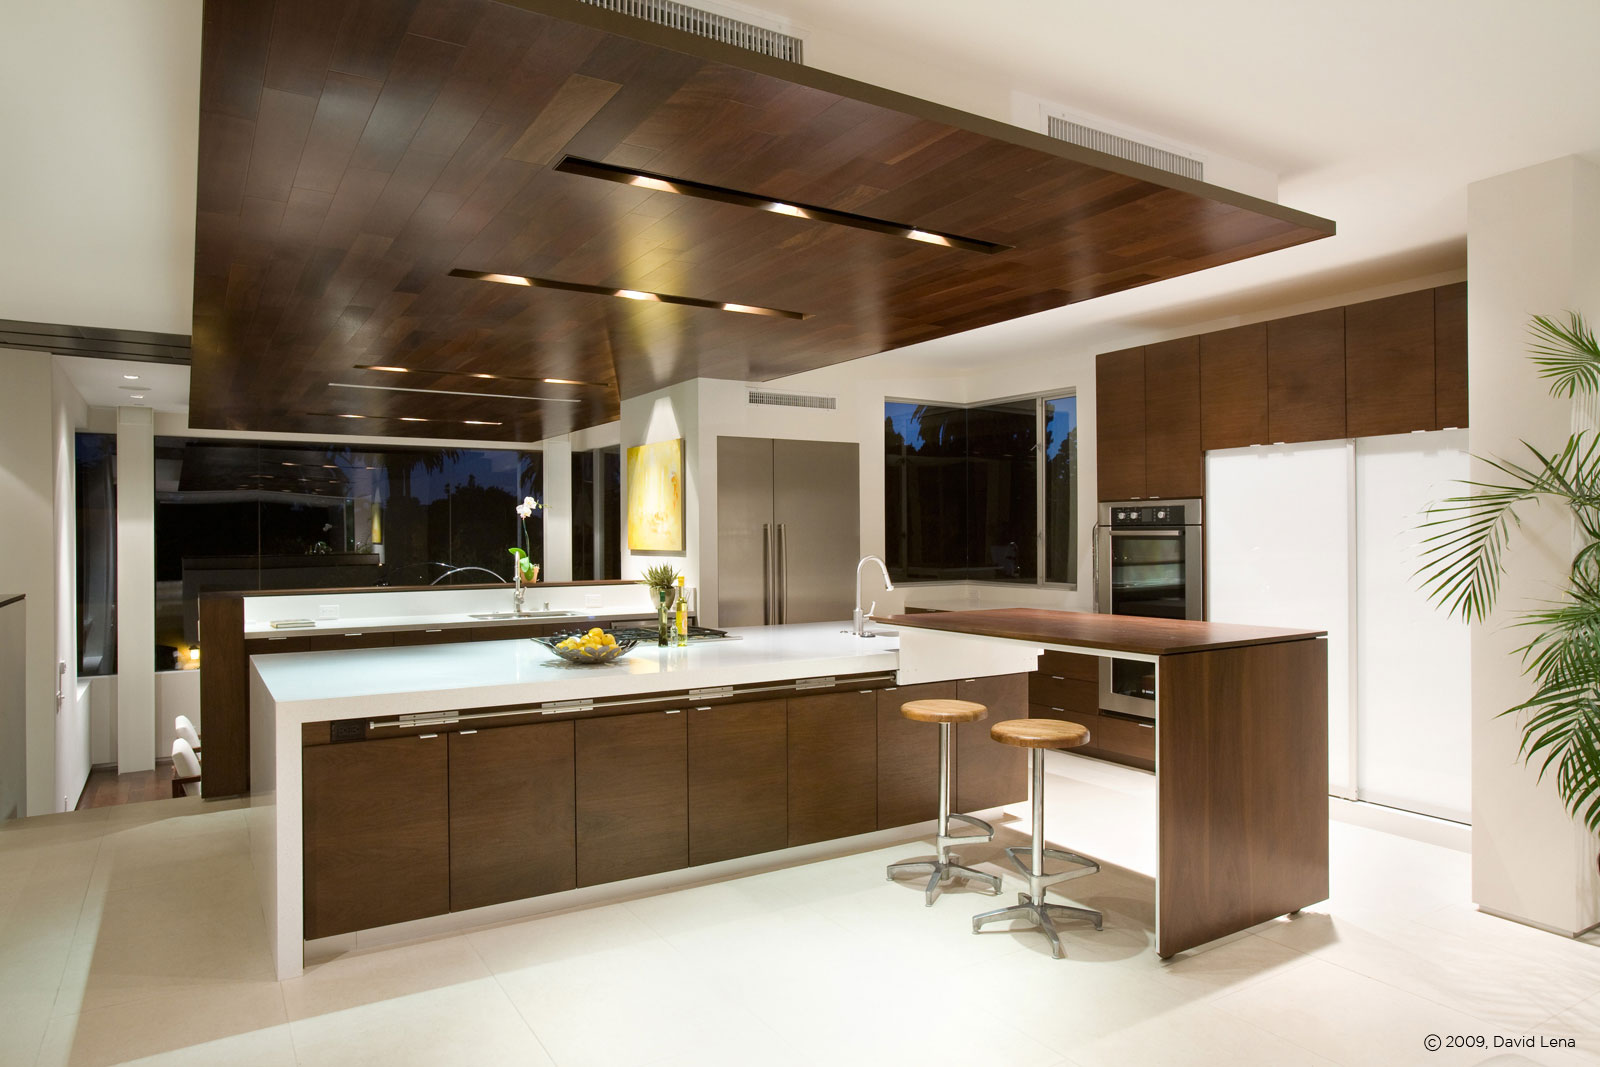 Casa minimalista en los ngeles for Contemporary kitchen designs 2014